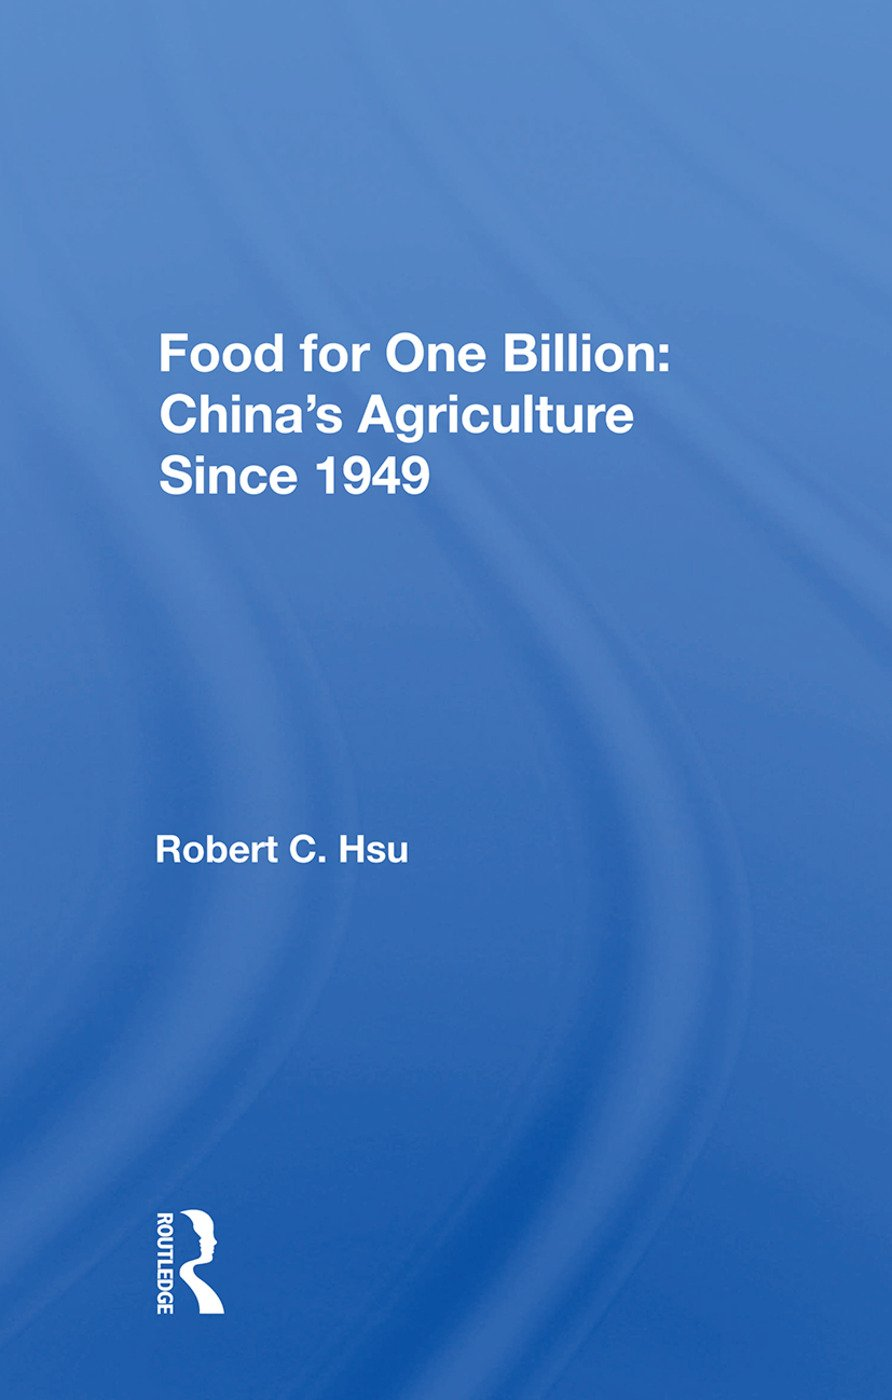 Food for One Billion: China's Agriculture Since 1949 book cover